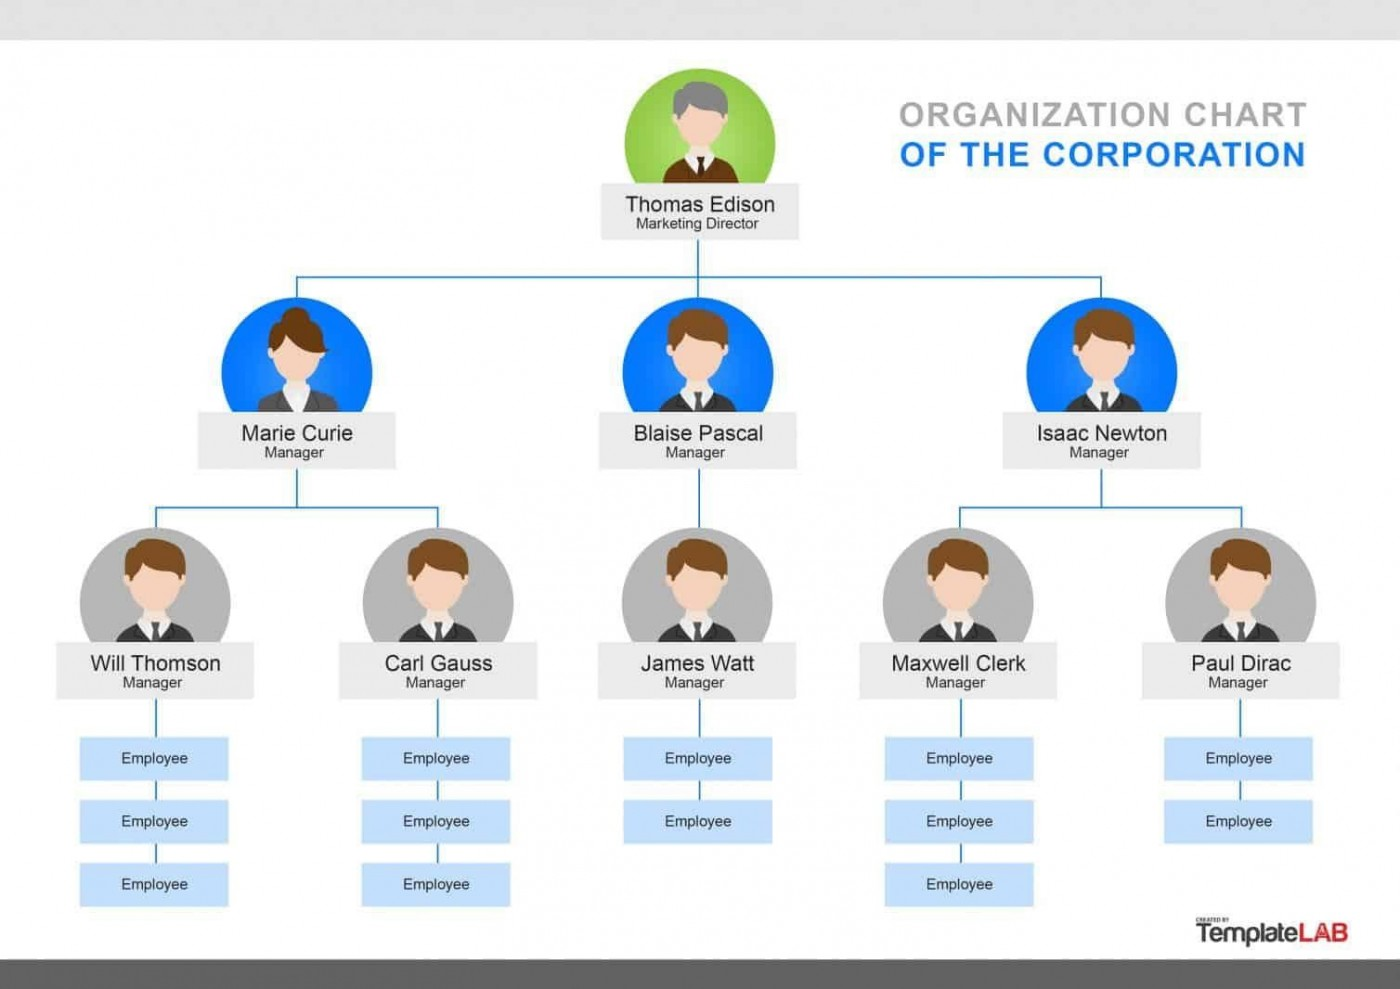 000 Fantastic Organizational Chart Template Excel Idea  Organization Download Org1400